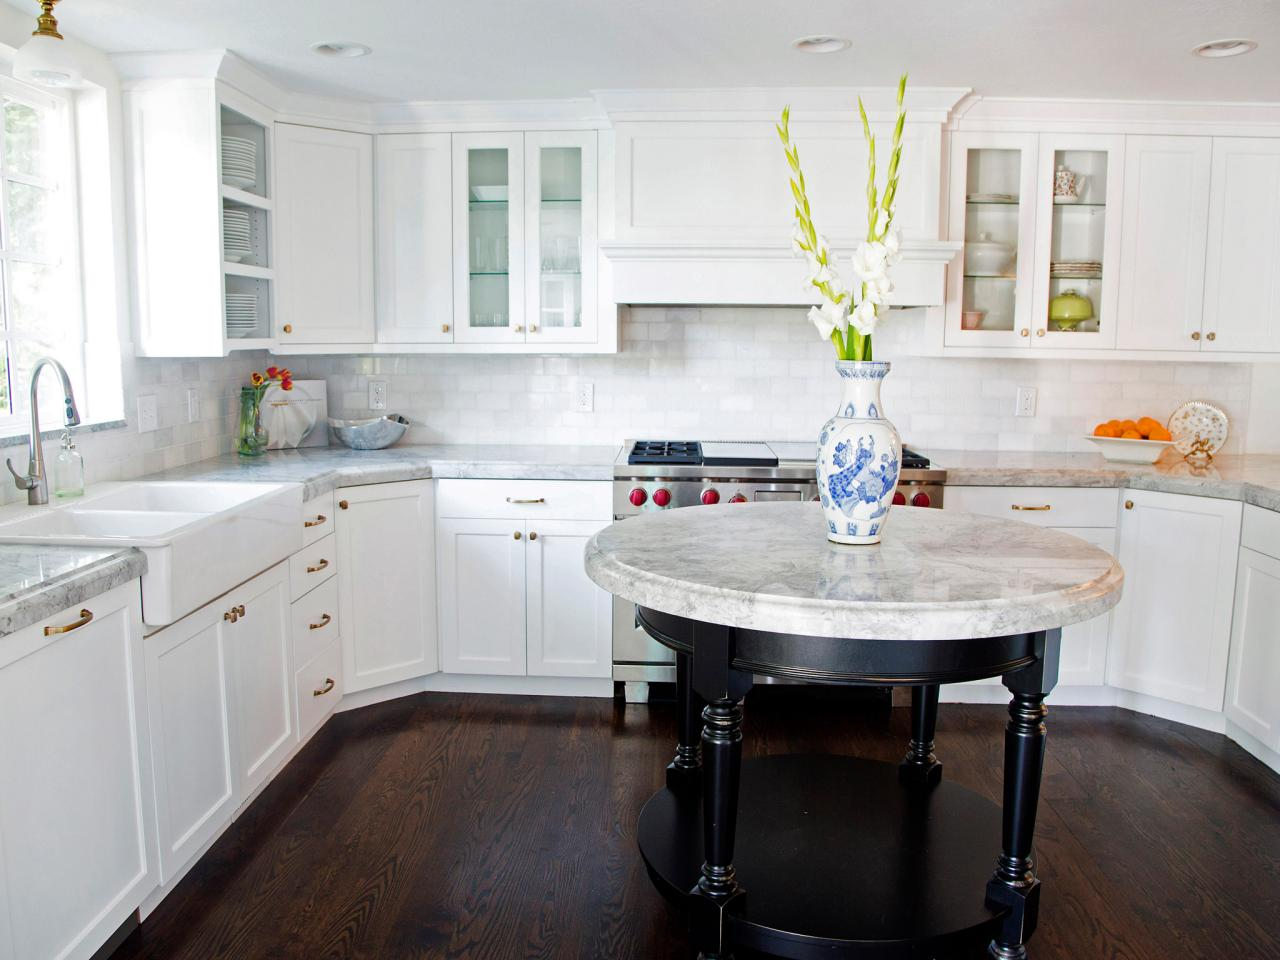 designing kitchen cabinets commercial wall covering 40 best cabinet design ideas architecture